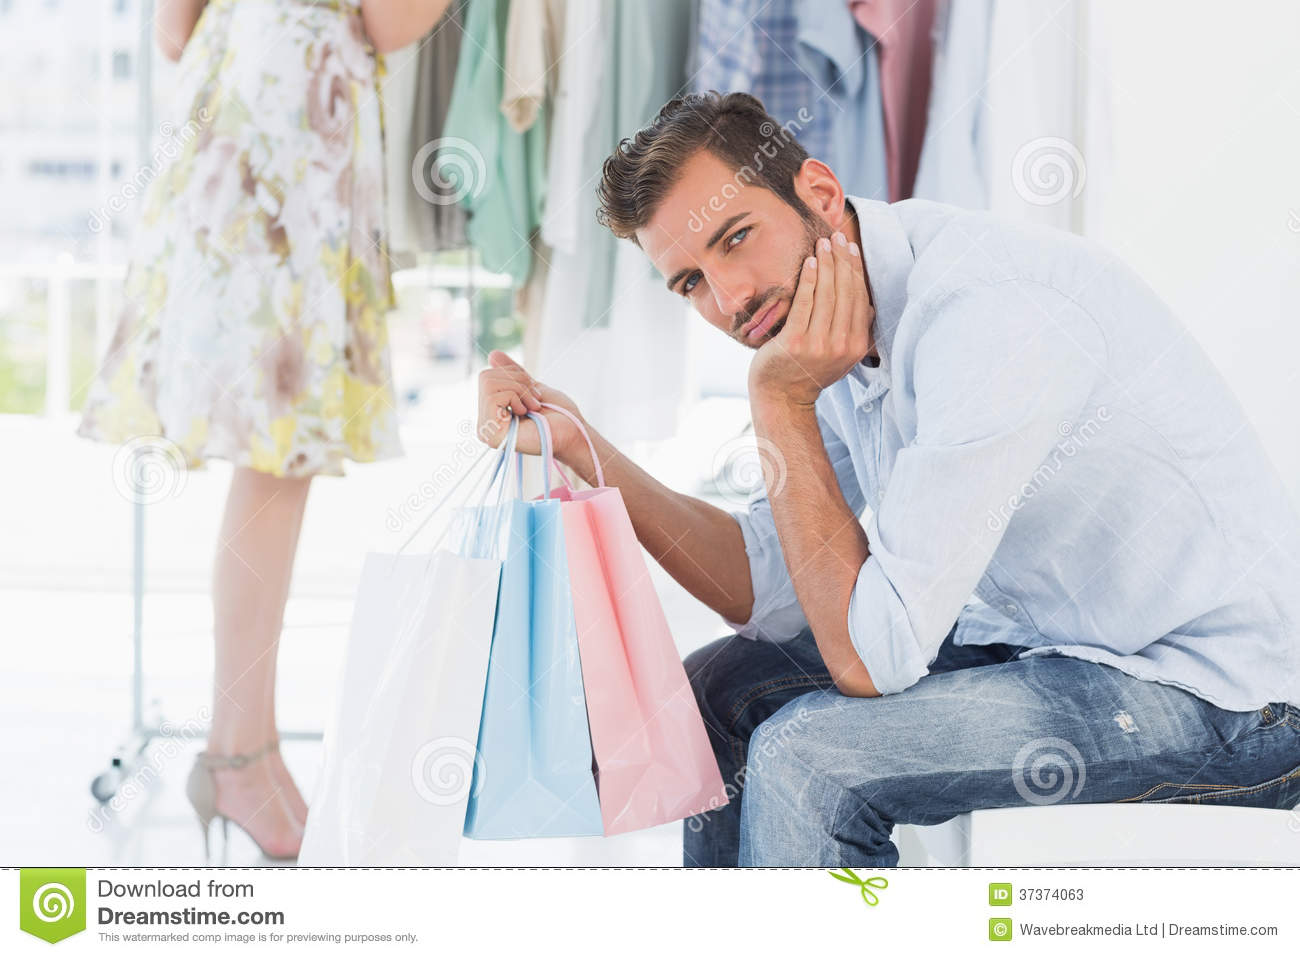 Men dressing in womens clothes. Online clothing stores